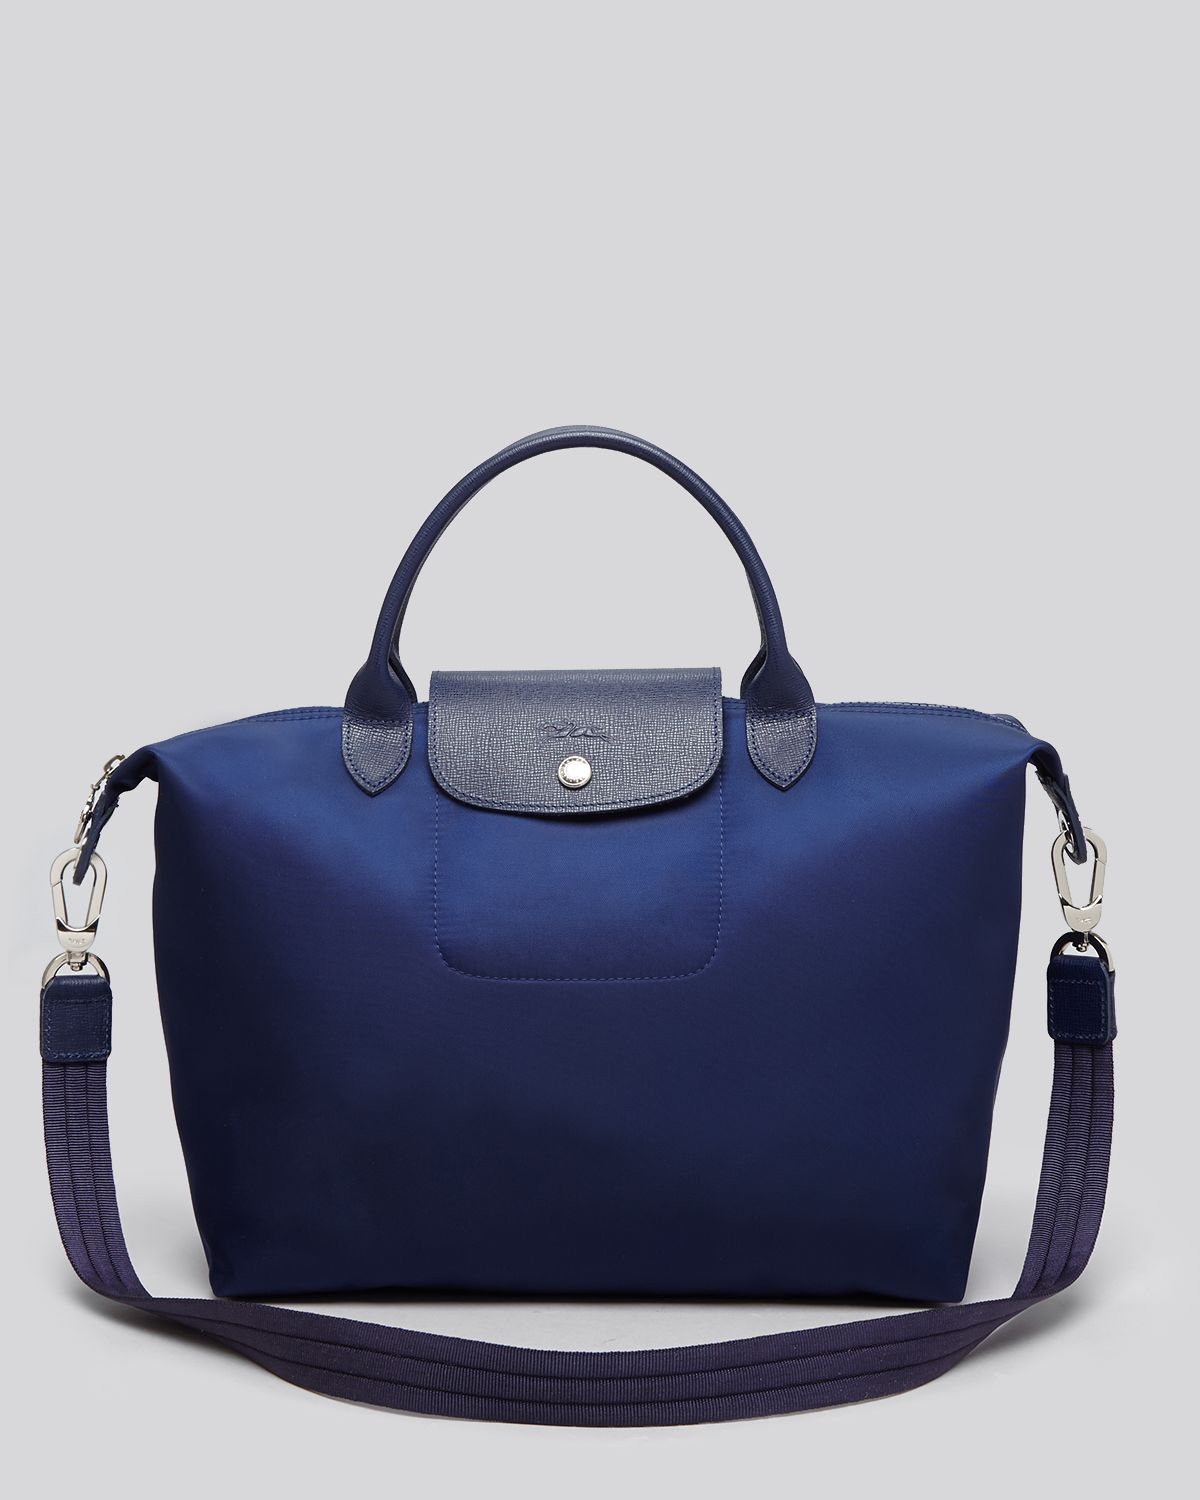 French House Longchamp Le Pliage Neo Medium Tote In Blue Lyst